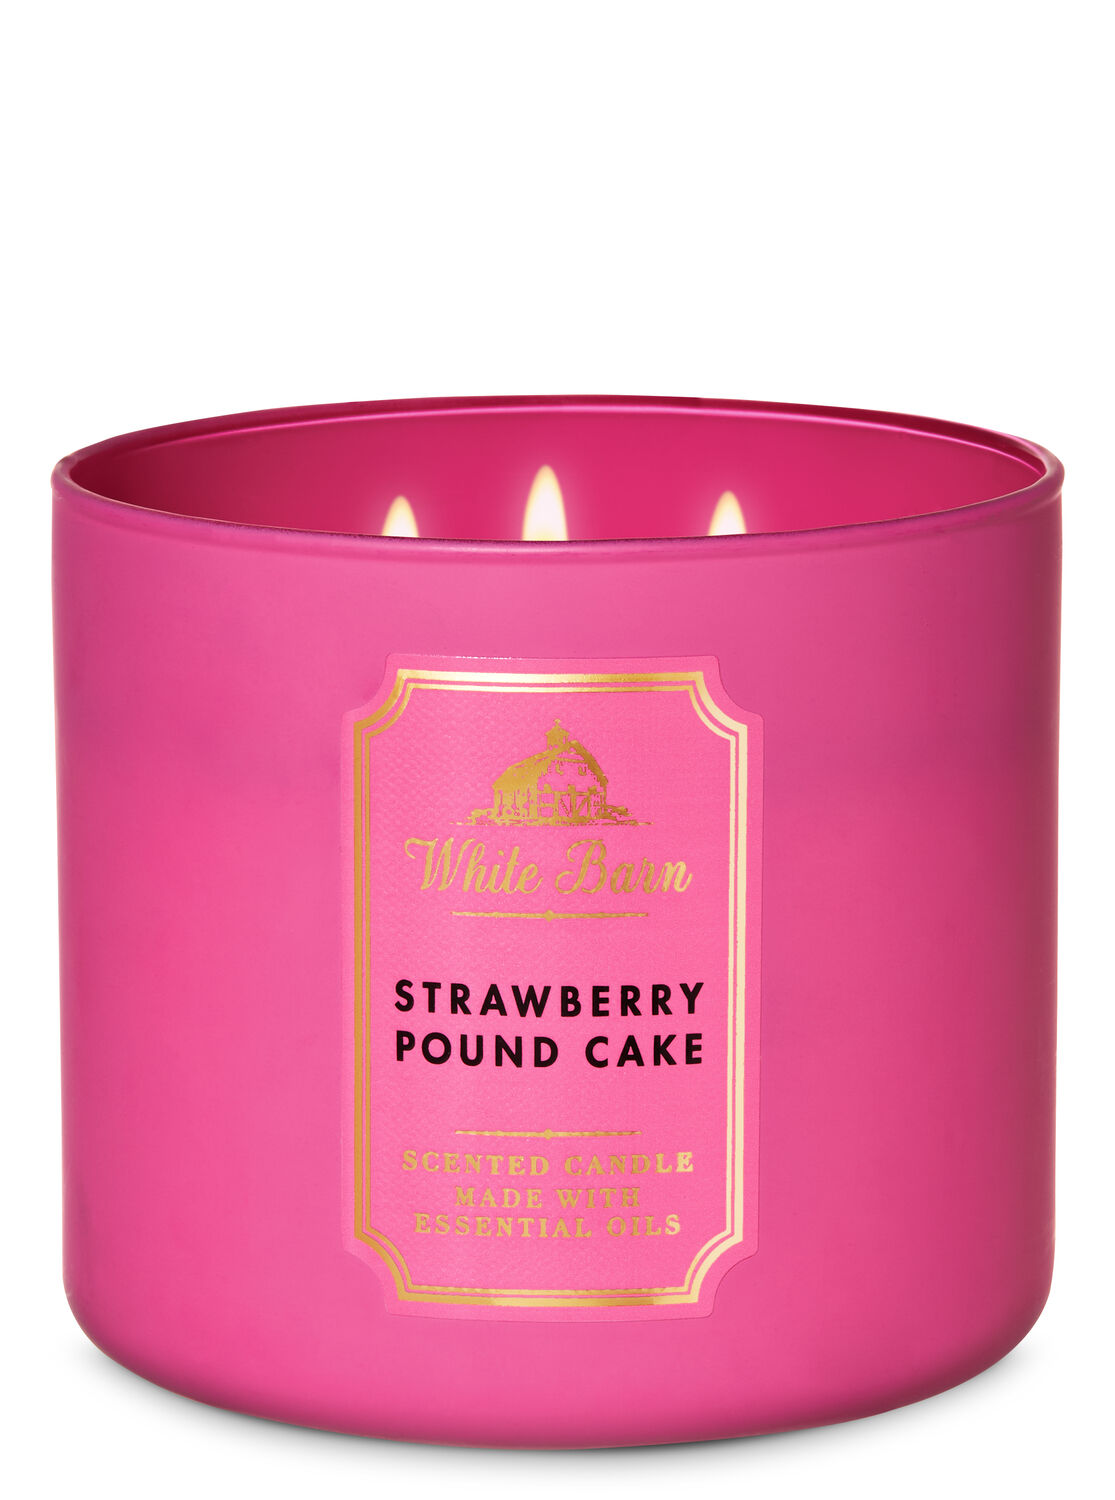 POUND CAKE SCENT HOME-MADE FRAGRANCE CANDLES